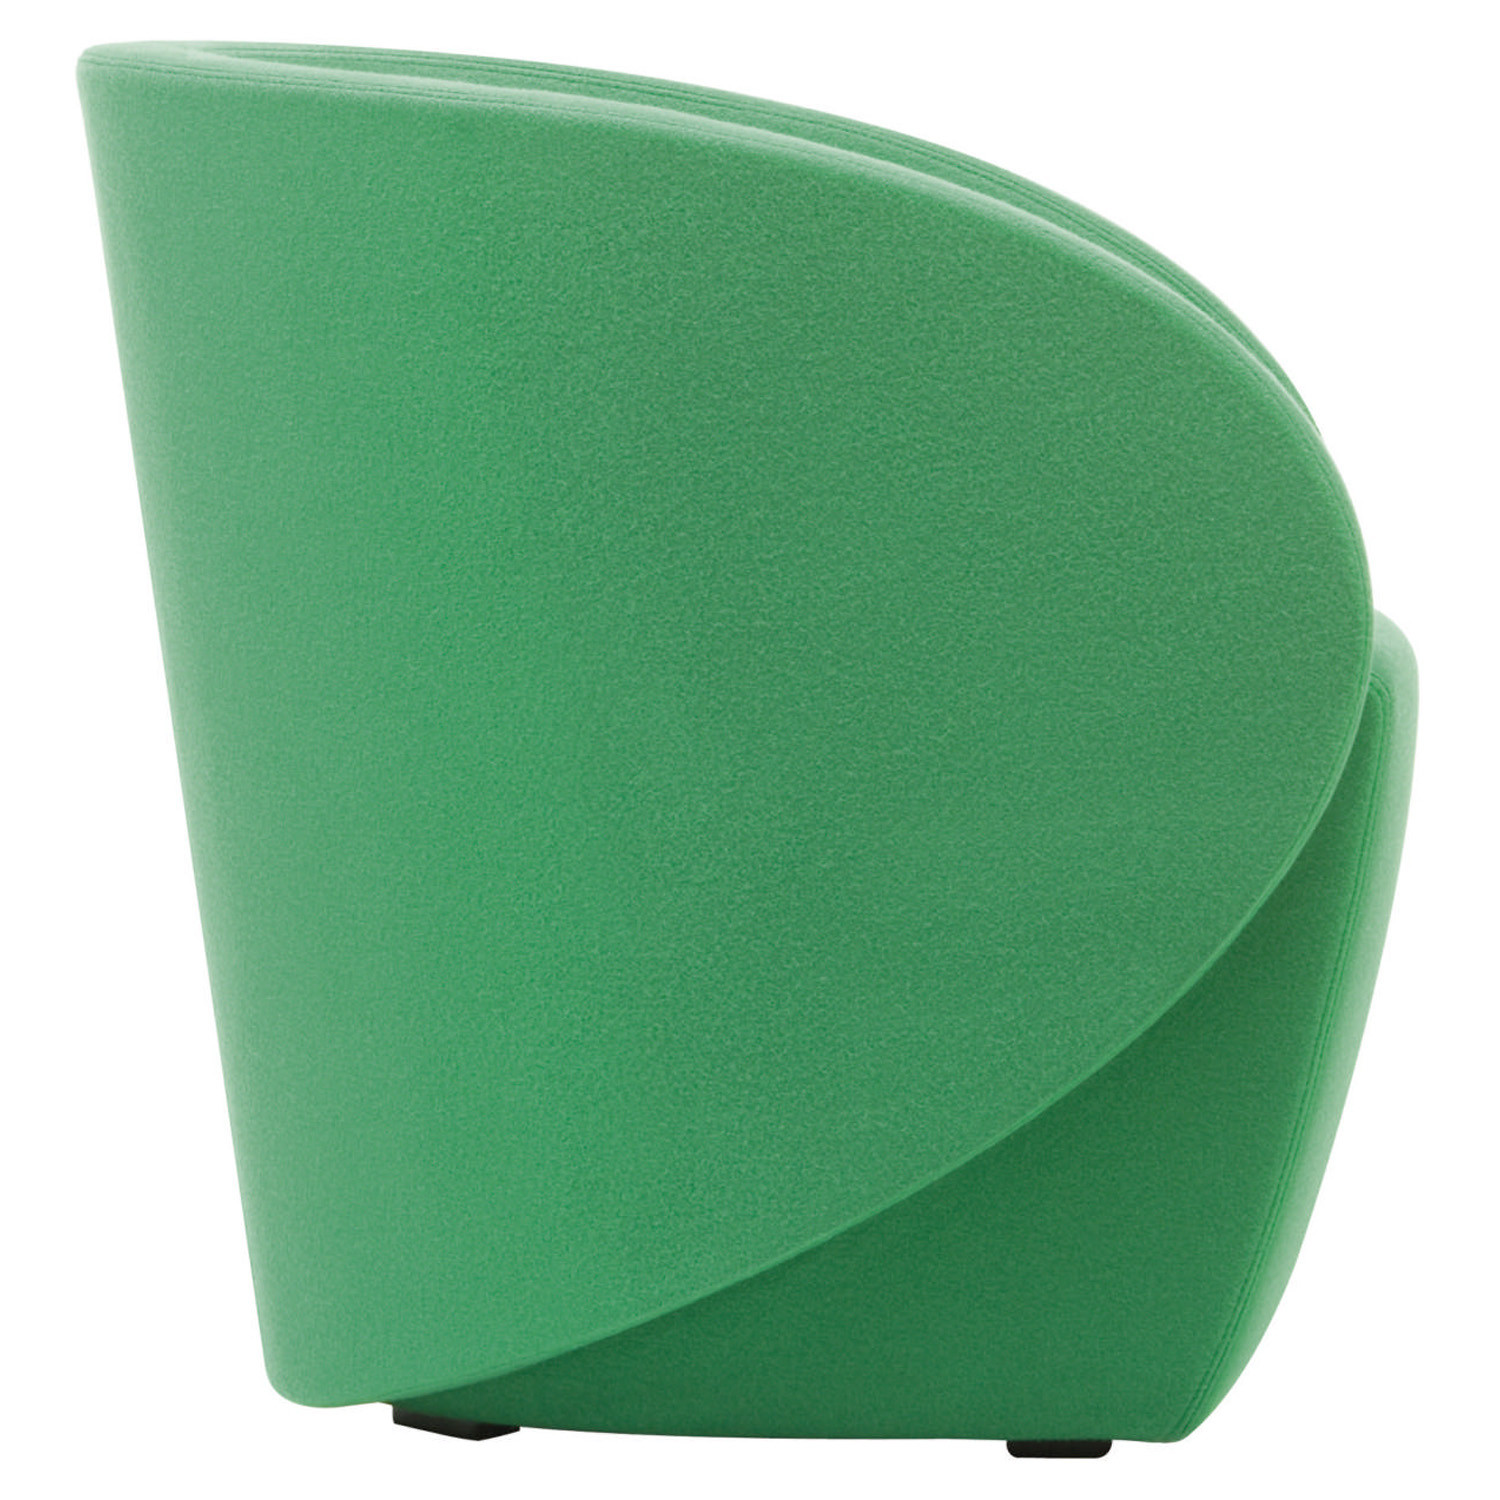 Cala Armchair fully upholstered